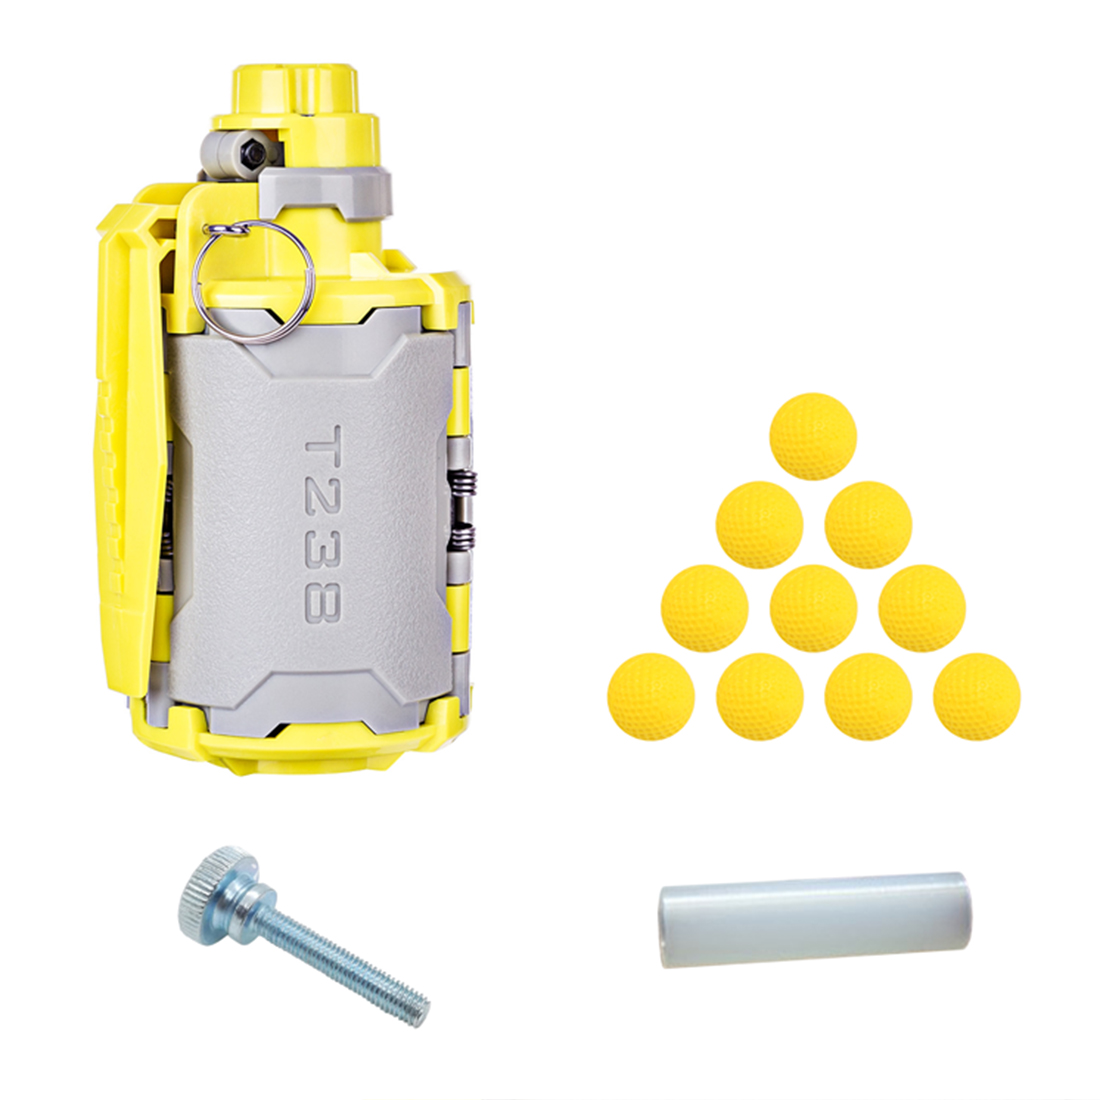 T238 V2 Water Bomb Toy Time-delayed Function for Nerf Gel <font><b>Ball</b></font> <font><b>BBs</b></font> for Airsoft Wargame 10 pcs <font><b>Balls</b></font> Hand Screw Knob Bolts image